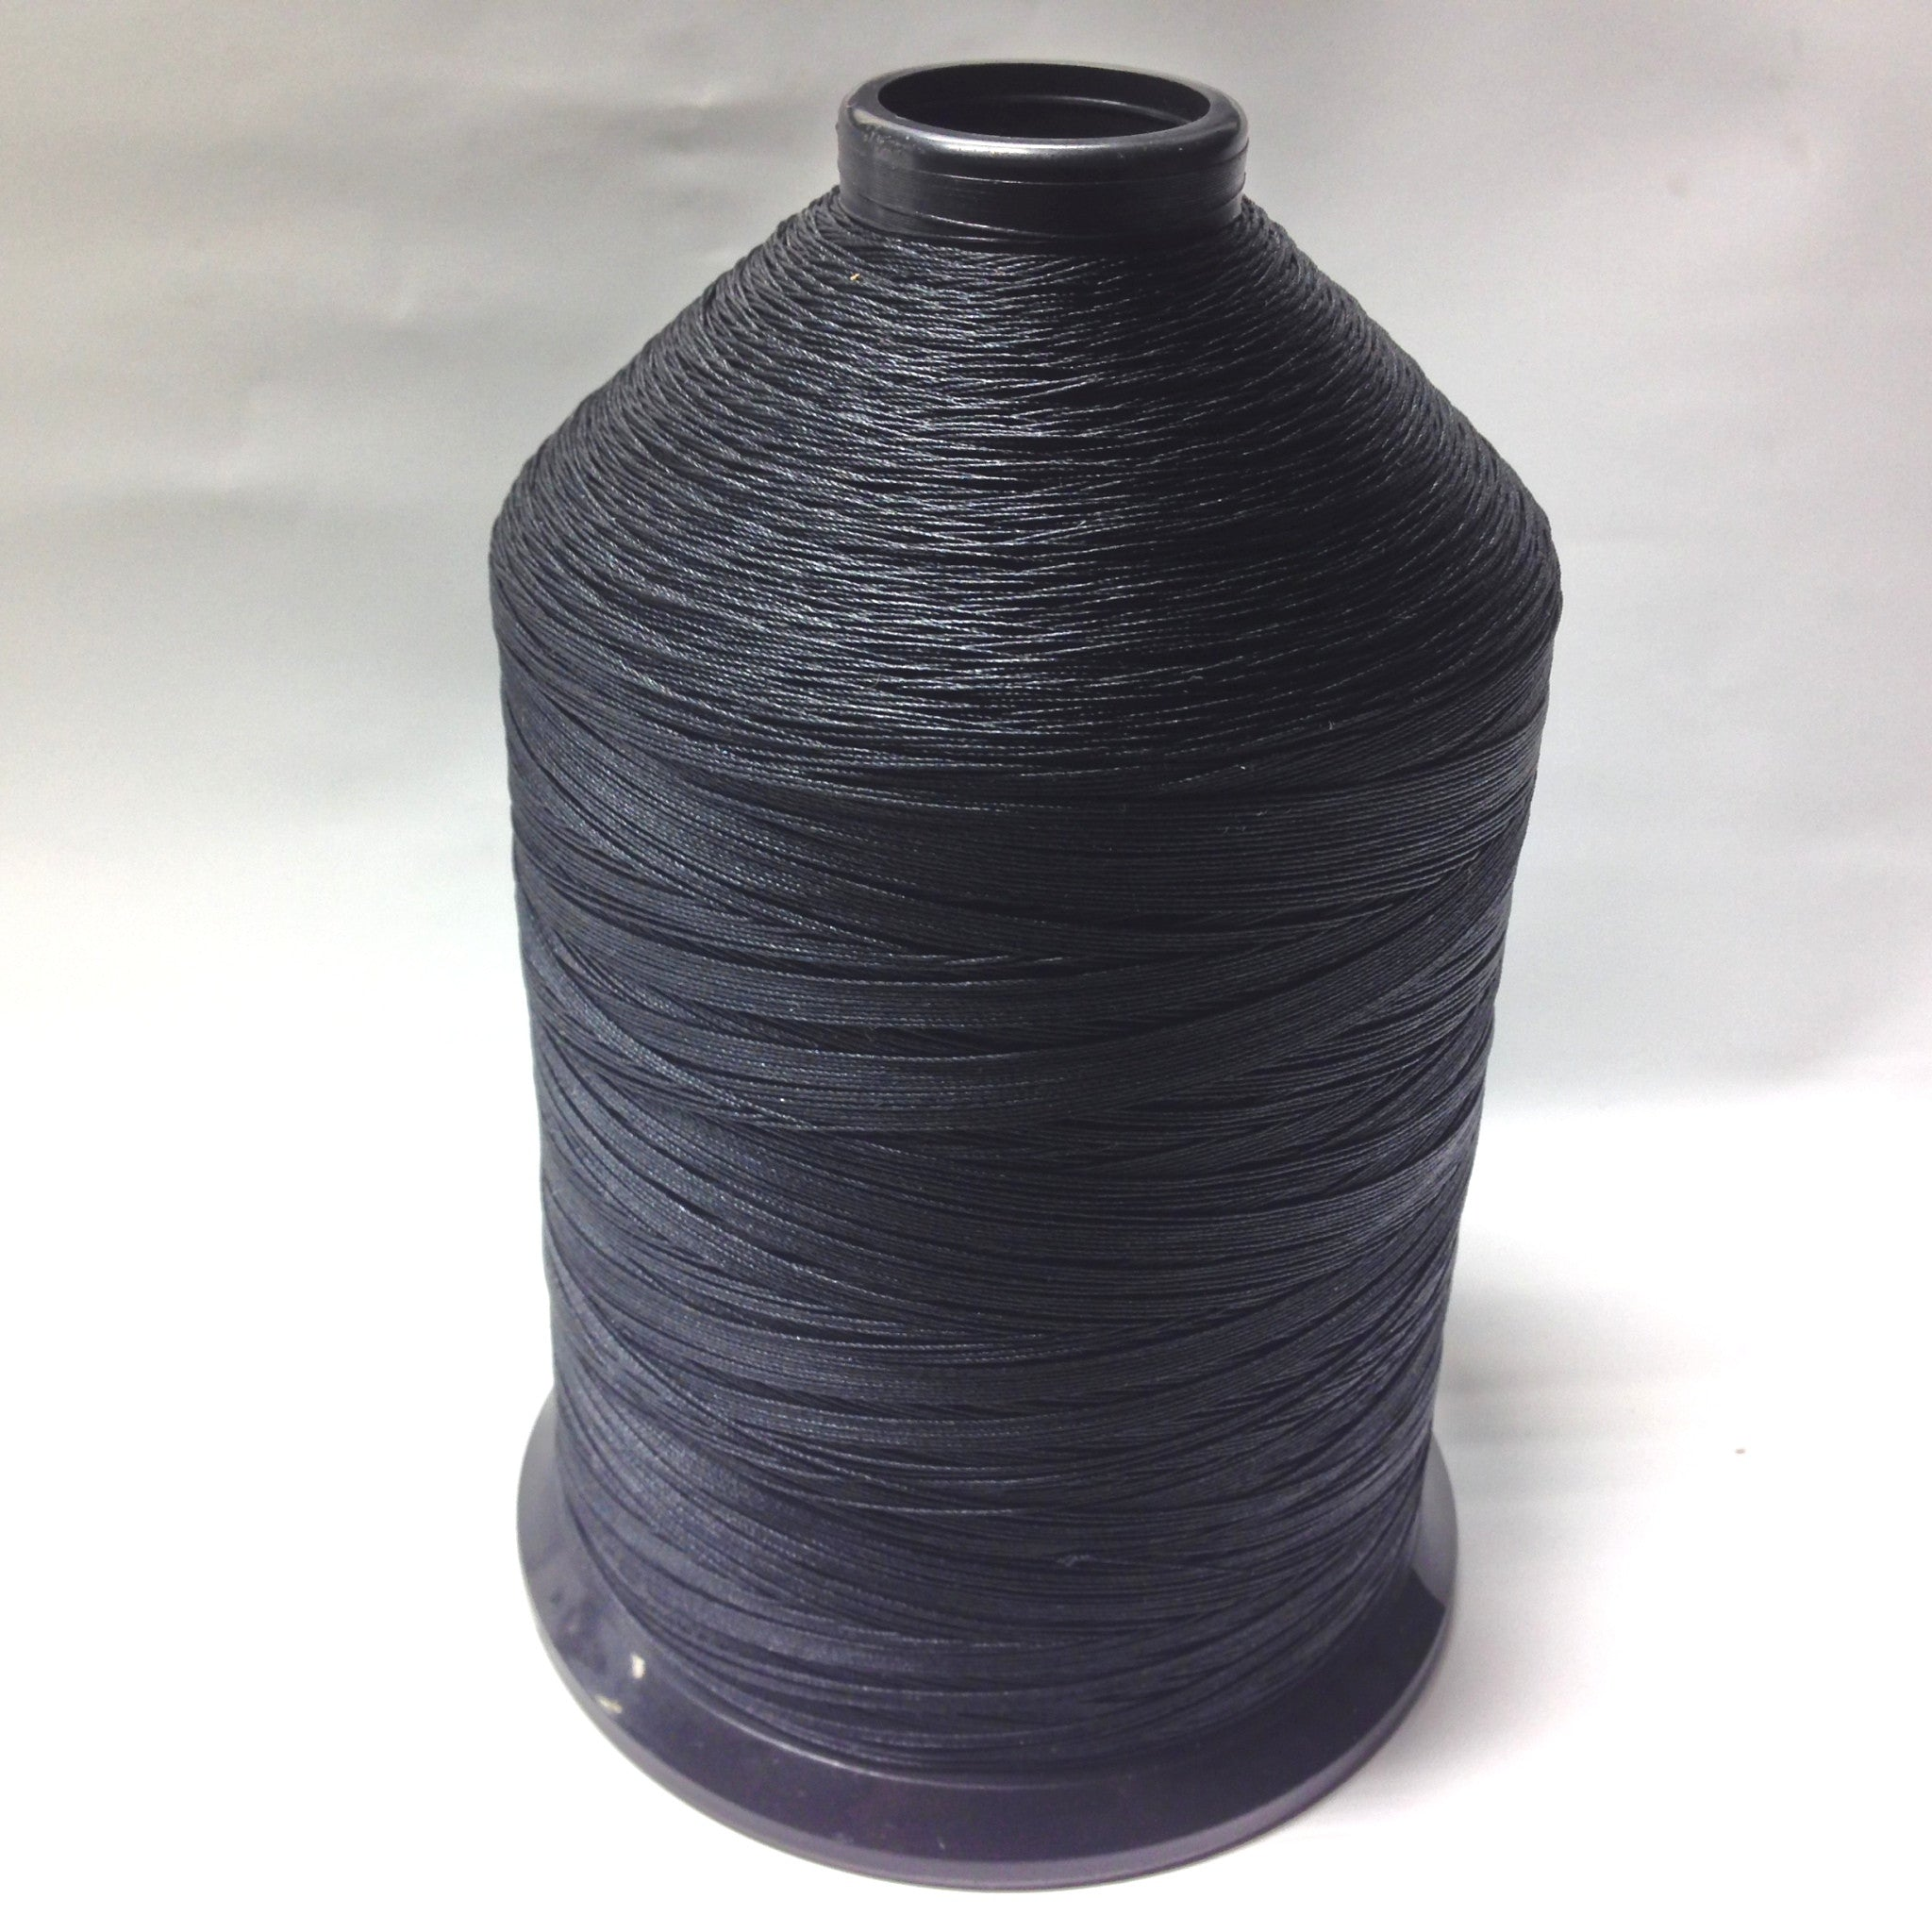 #46 Black Bonded Nylon Thread 1 lb.